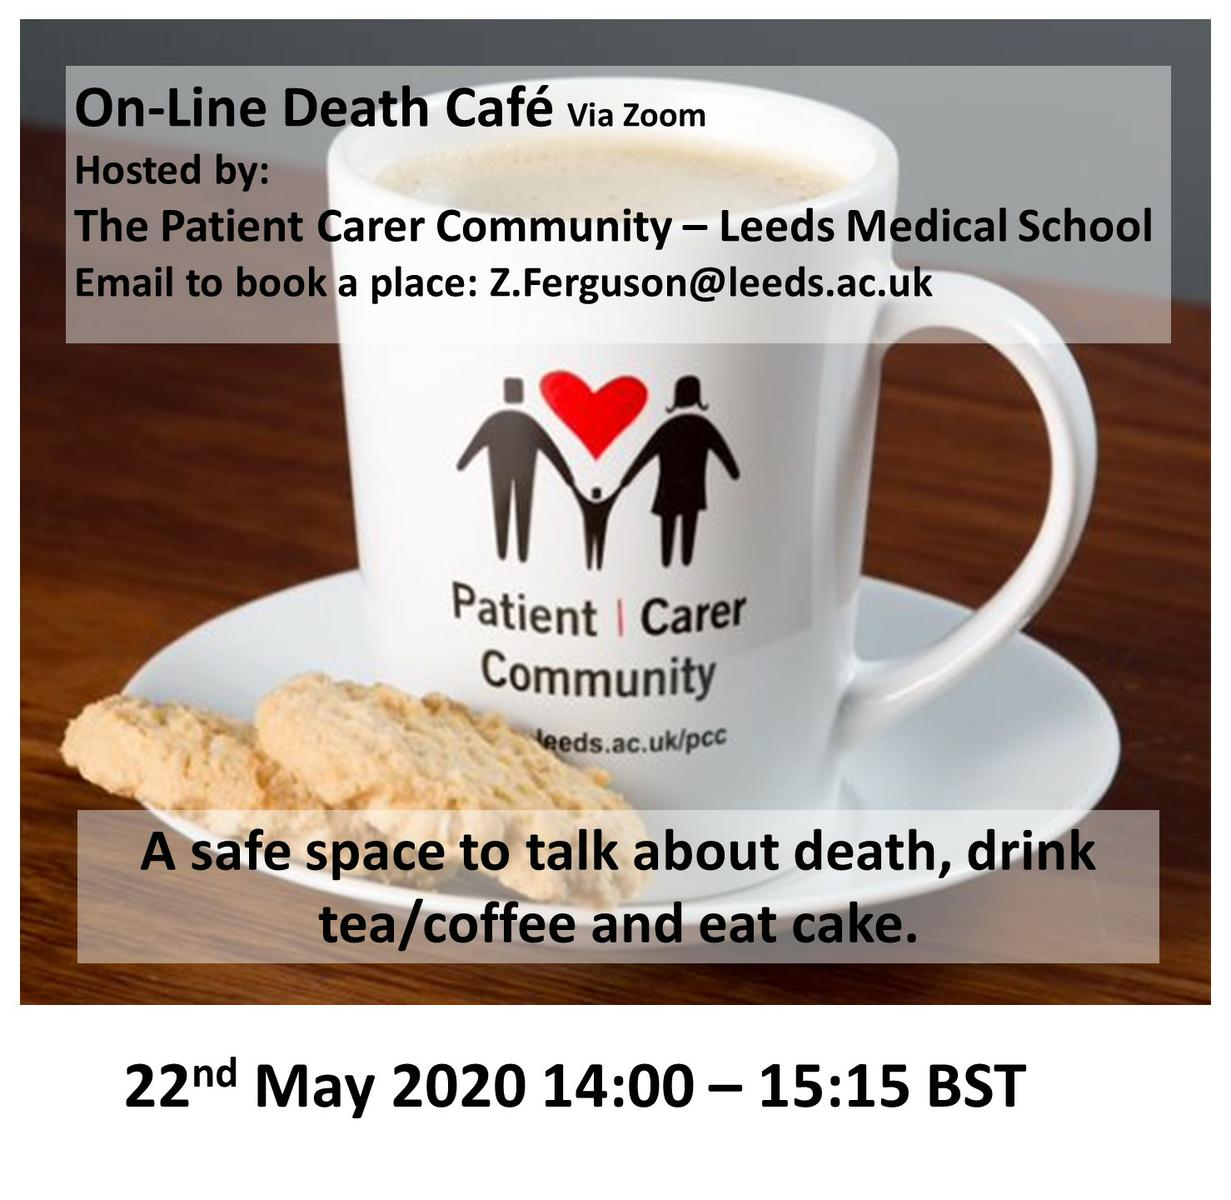 On-line Death Cafe in West Yorkshire BST